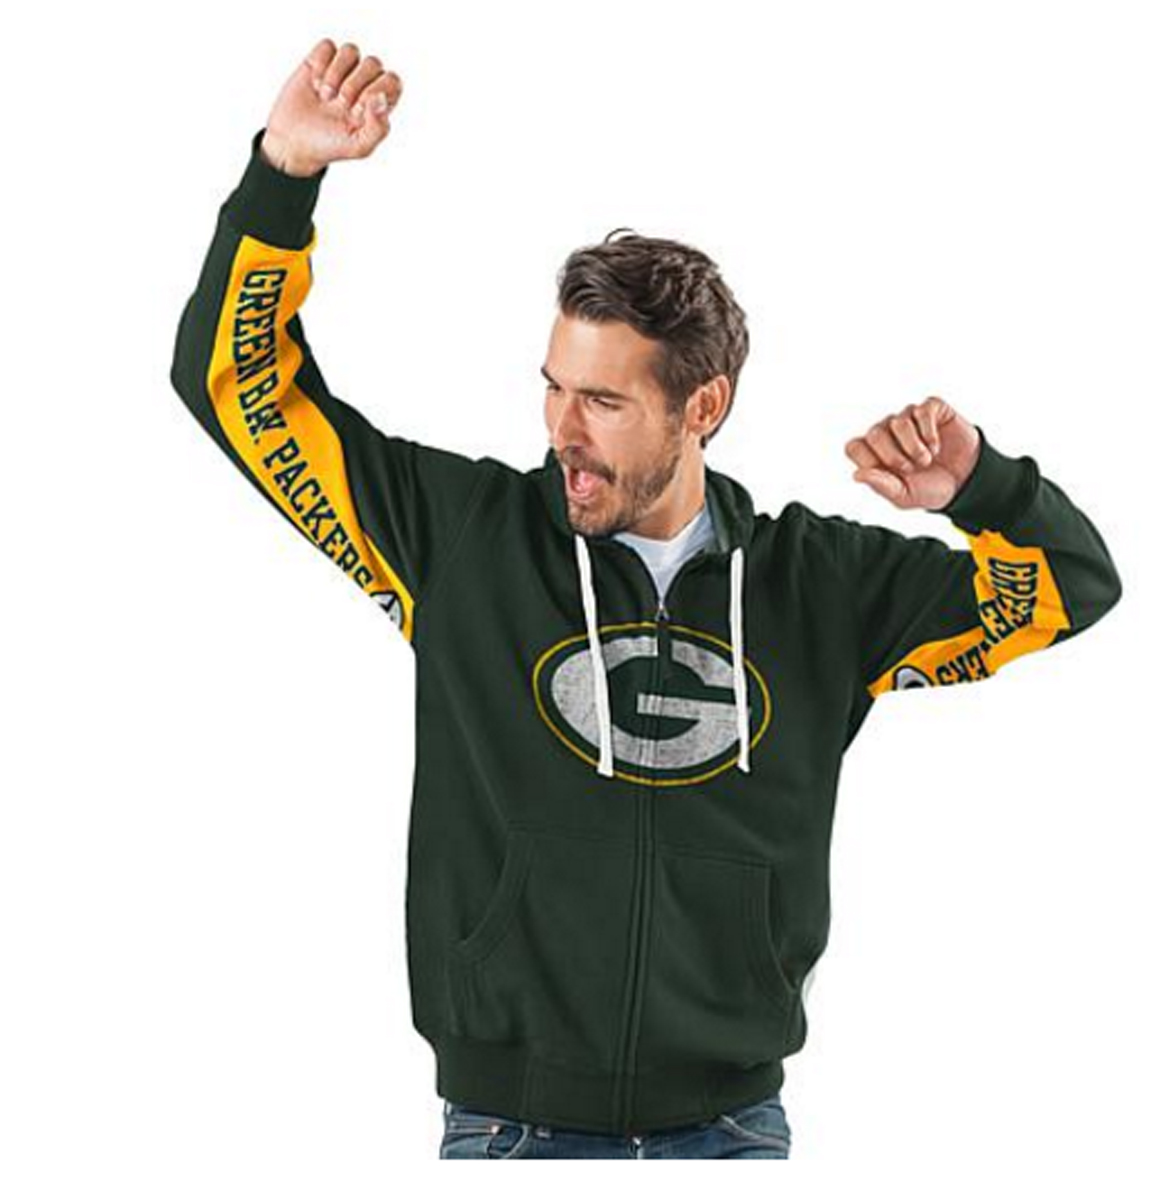 Green Bay PACKERS Official NFL Hands High Game Day Fleece Hoodie Jacket by Glll ~2X